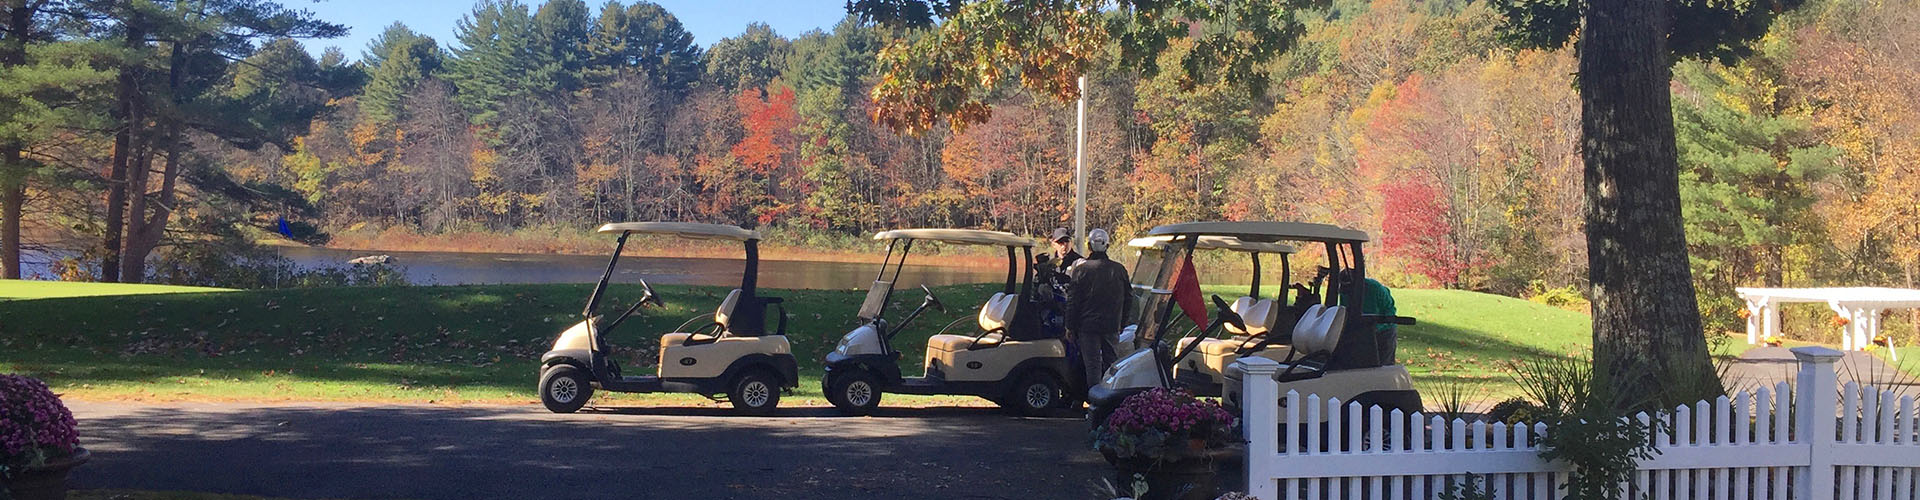 A fleet of golf carts is lined up for riding